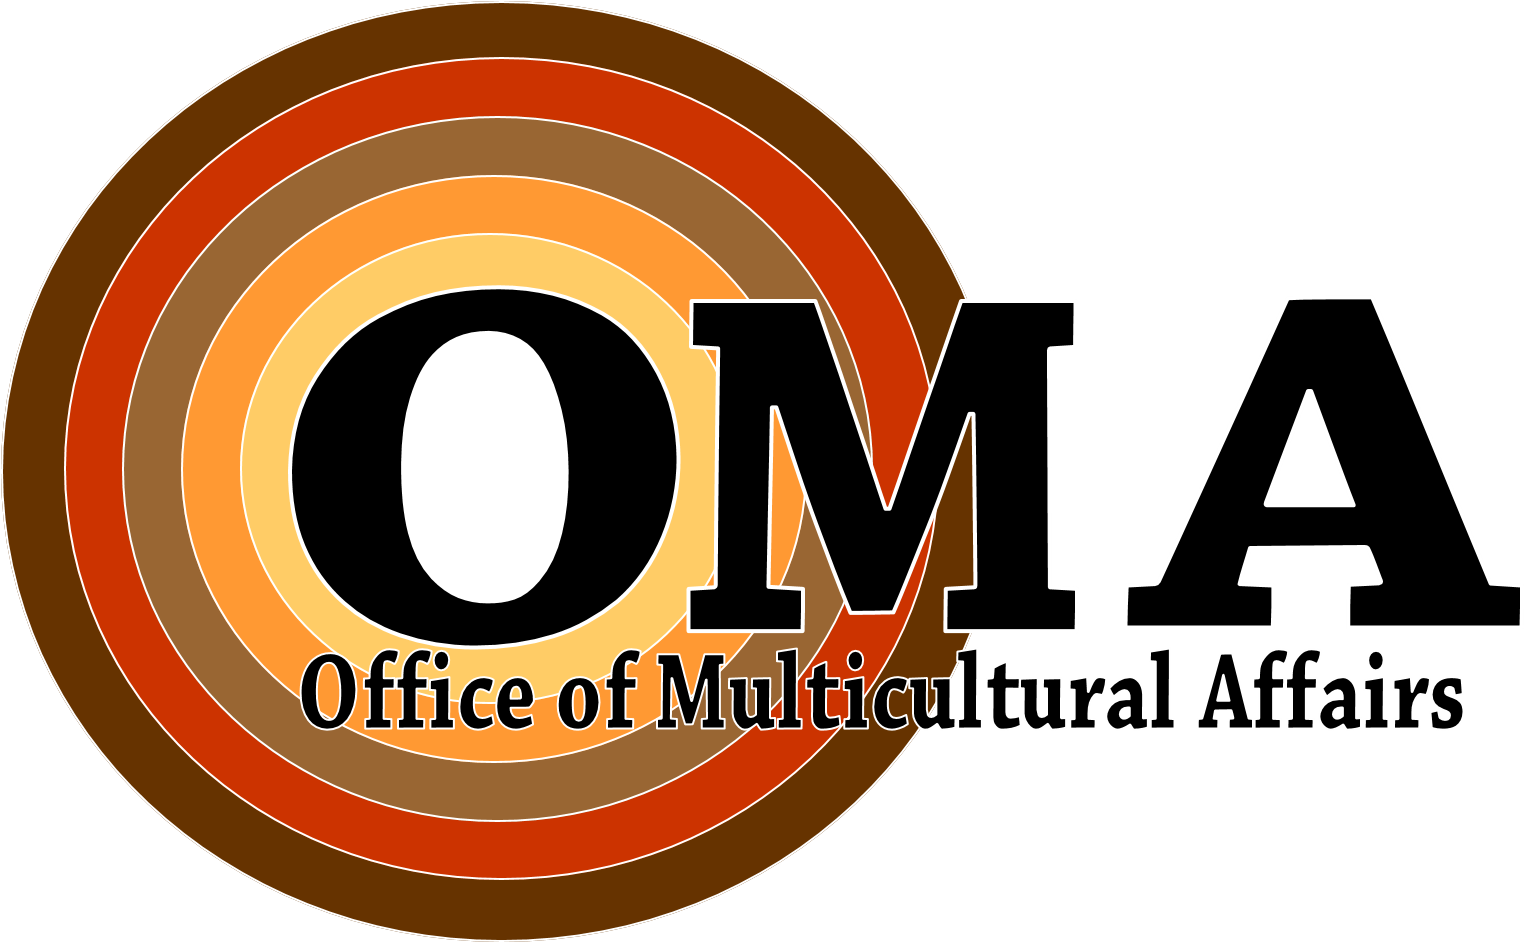 Office of Multicultural Affairs logo - click to go to OMA website